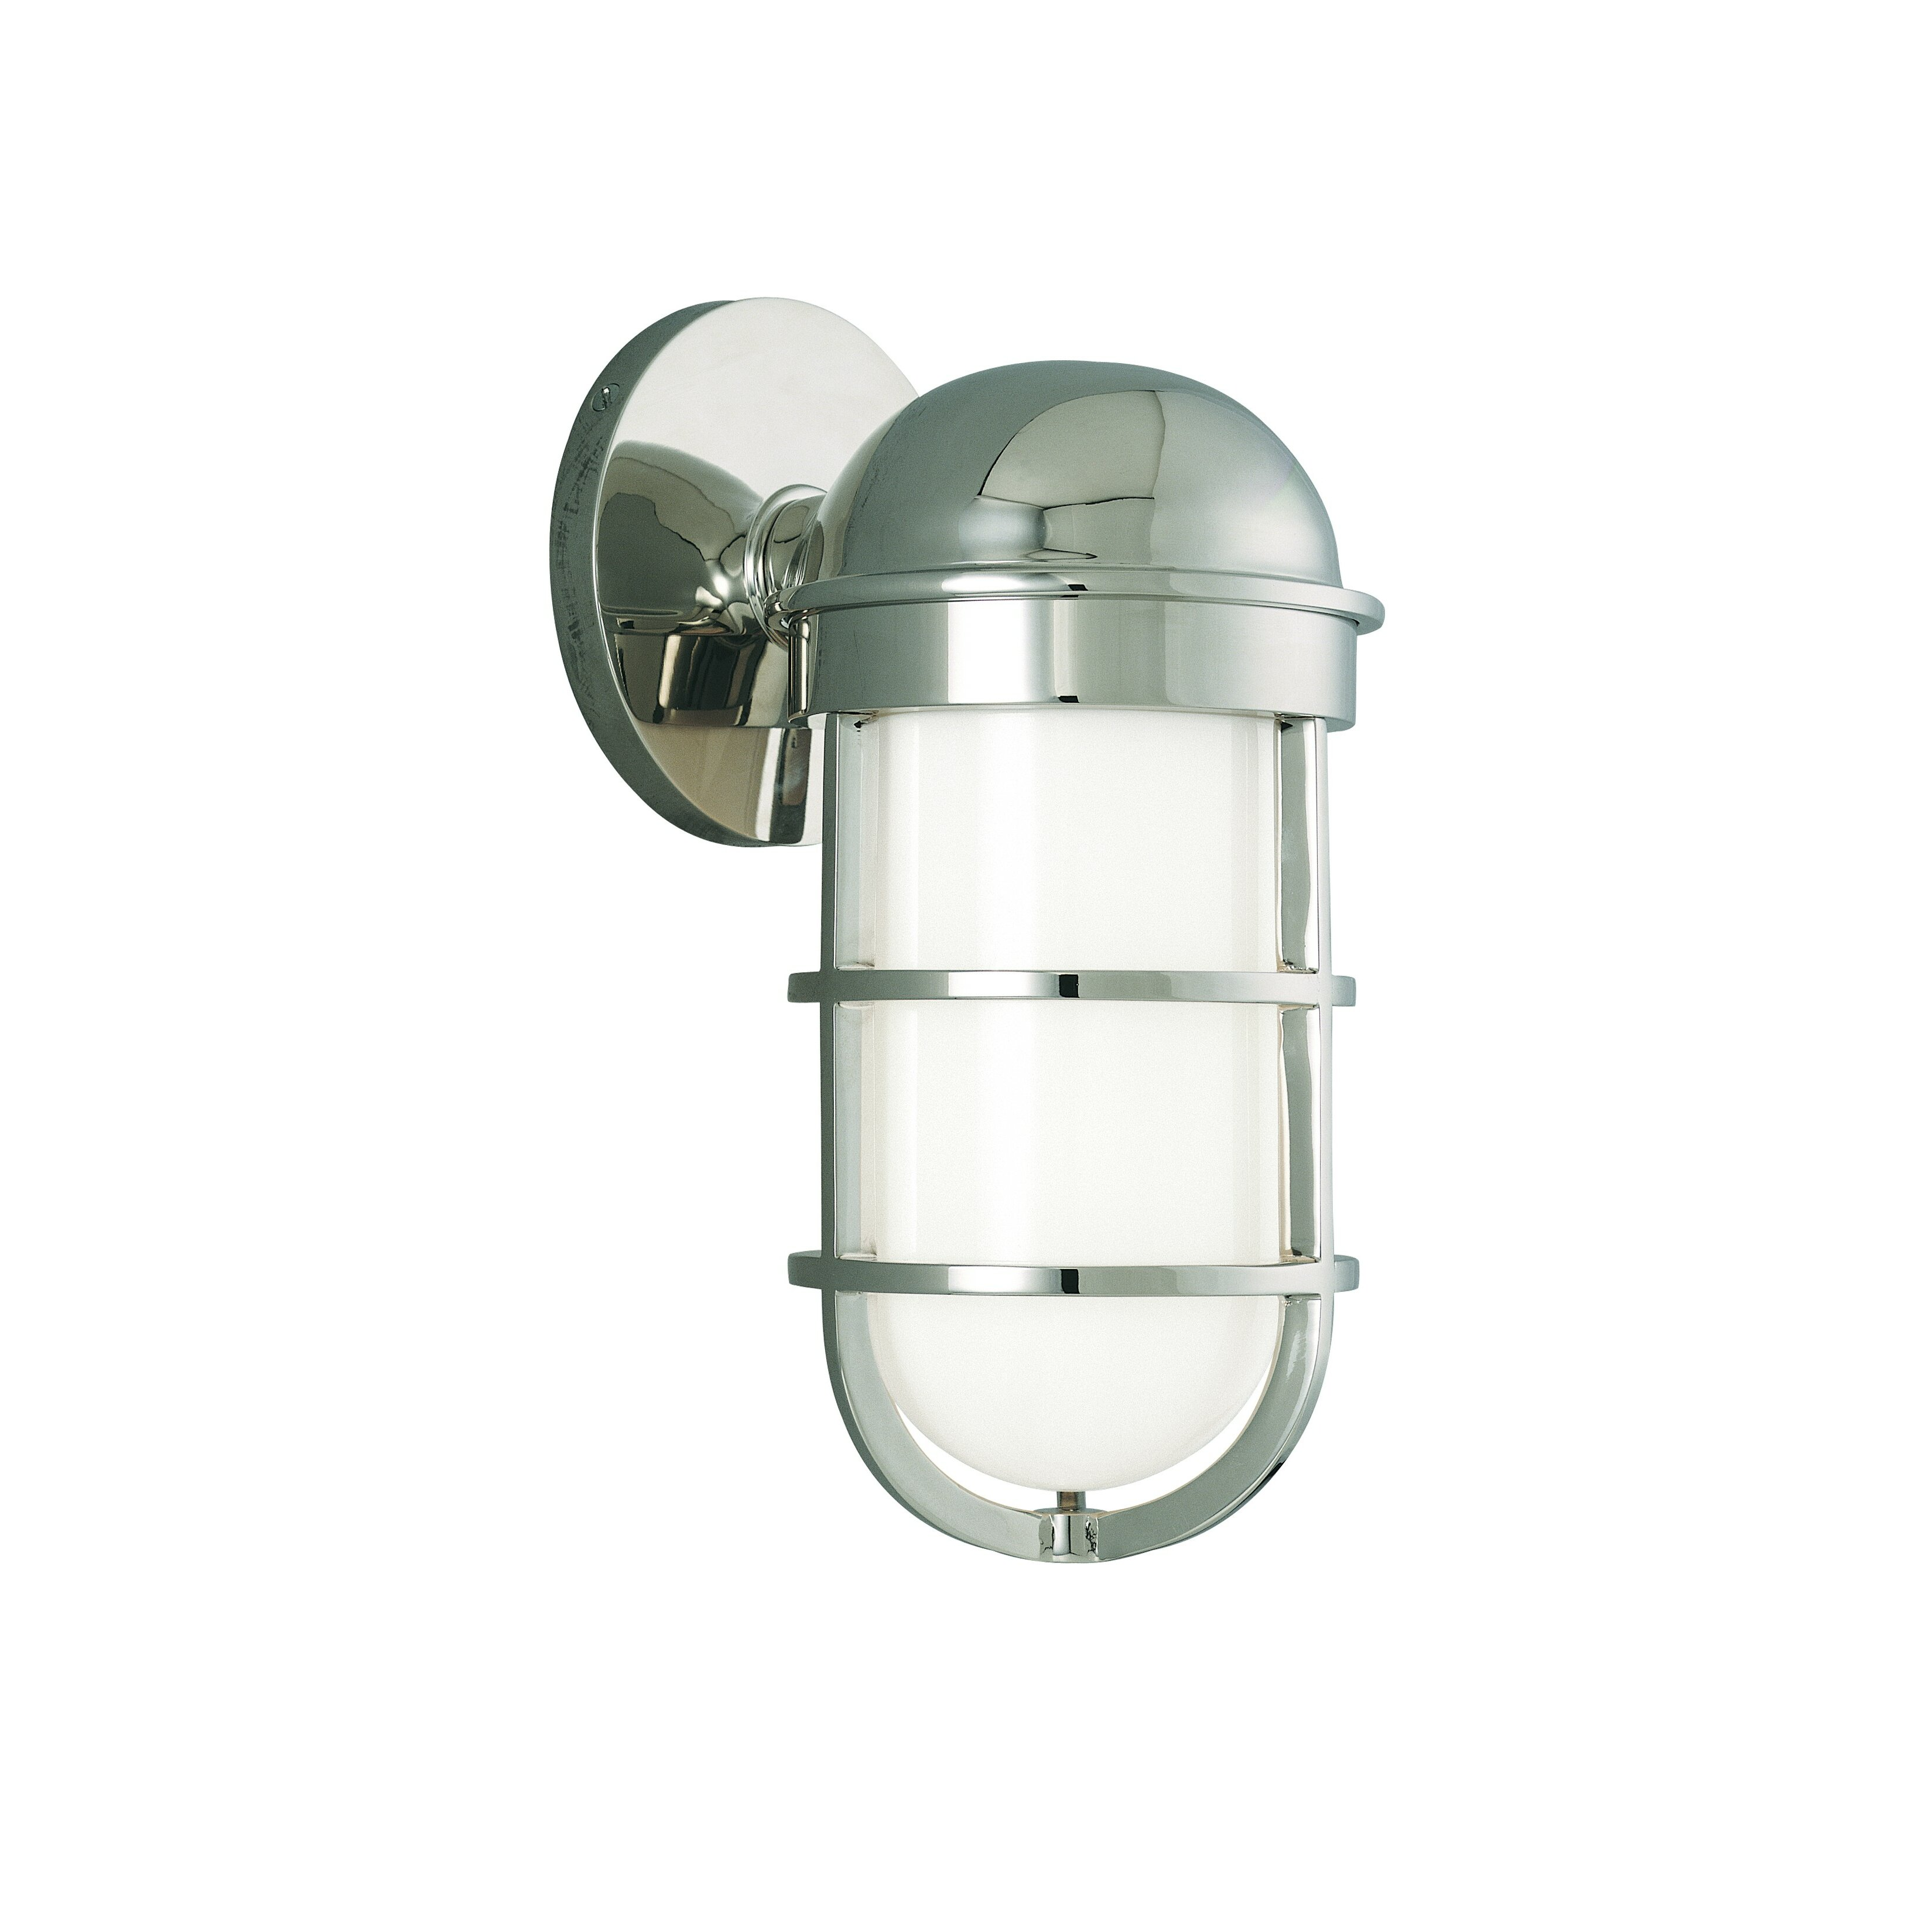 Hudson Valley Lighting Bradford: Hudson Valley Lighting Bradford 1 Light Bath Vanity Light